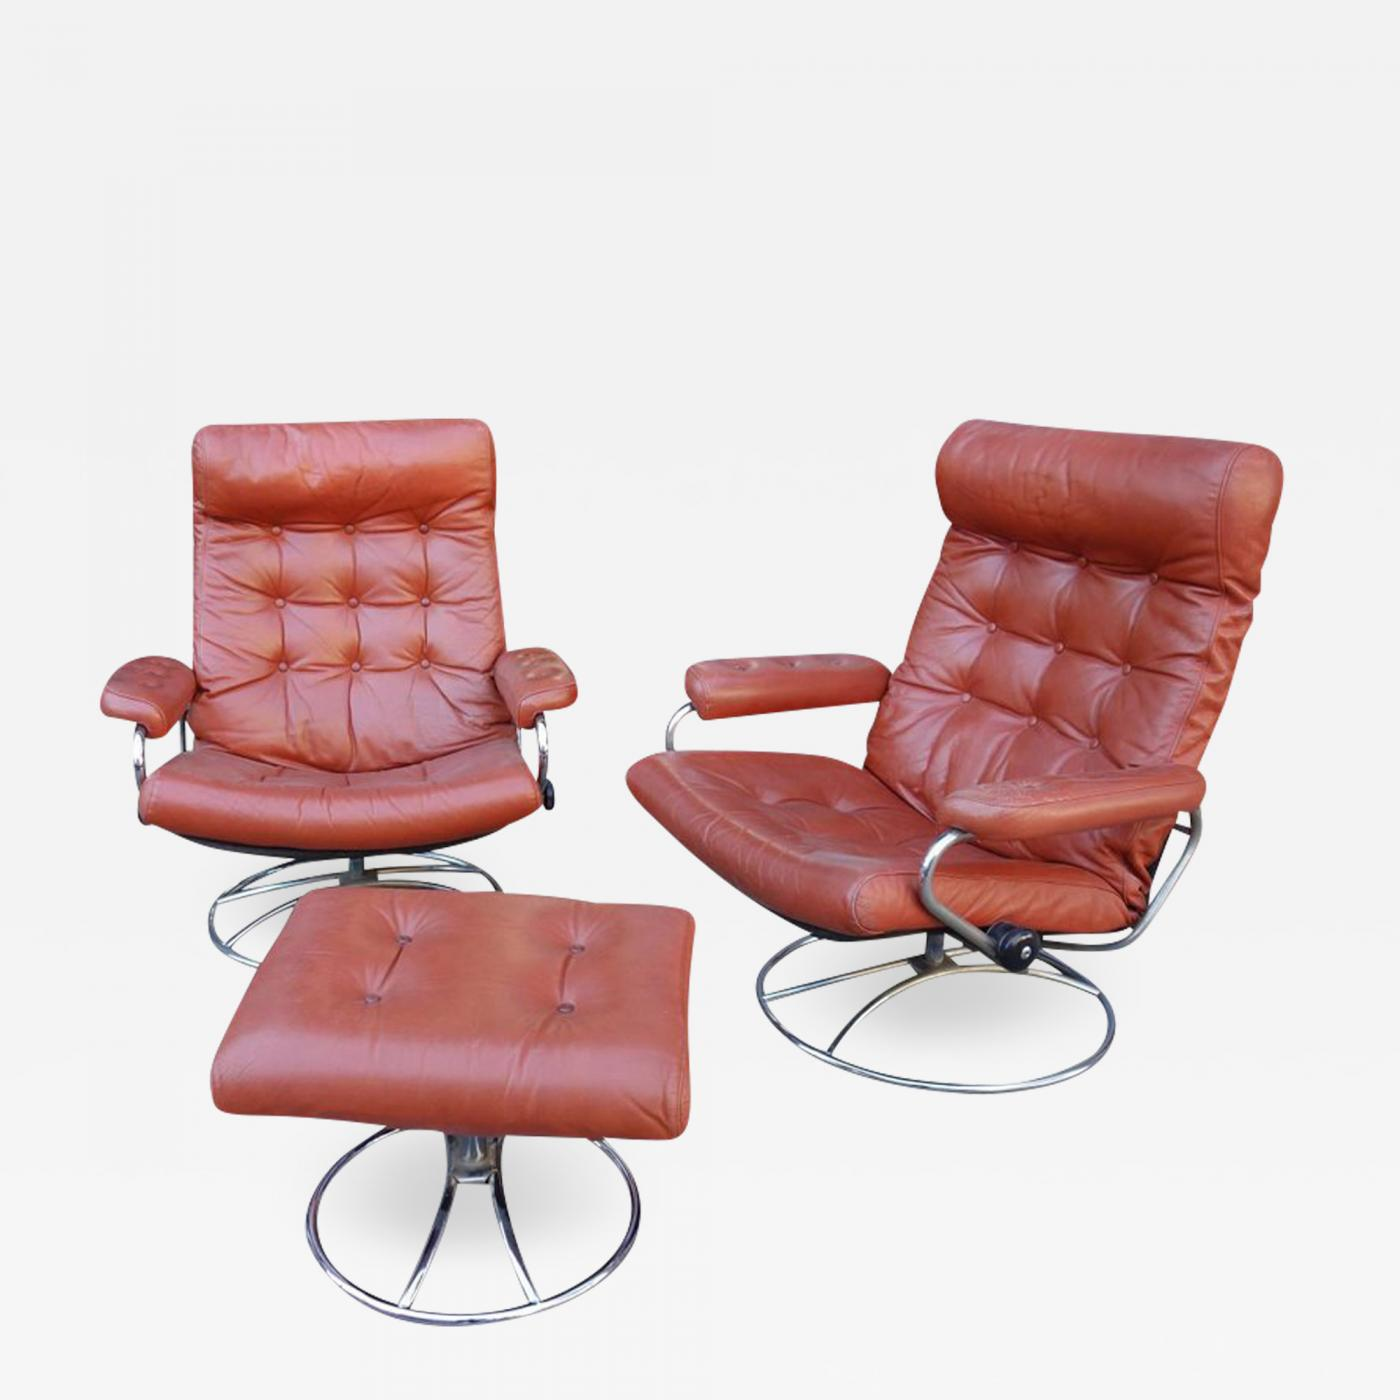 Gentil Listings / Furniture / Seating / Lounge Chairs